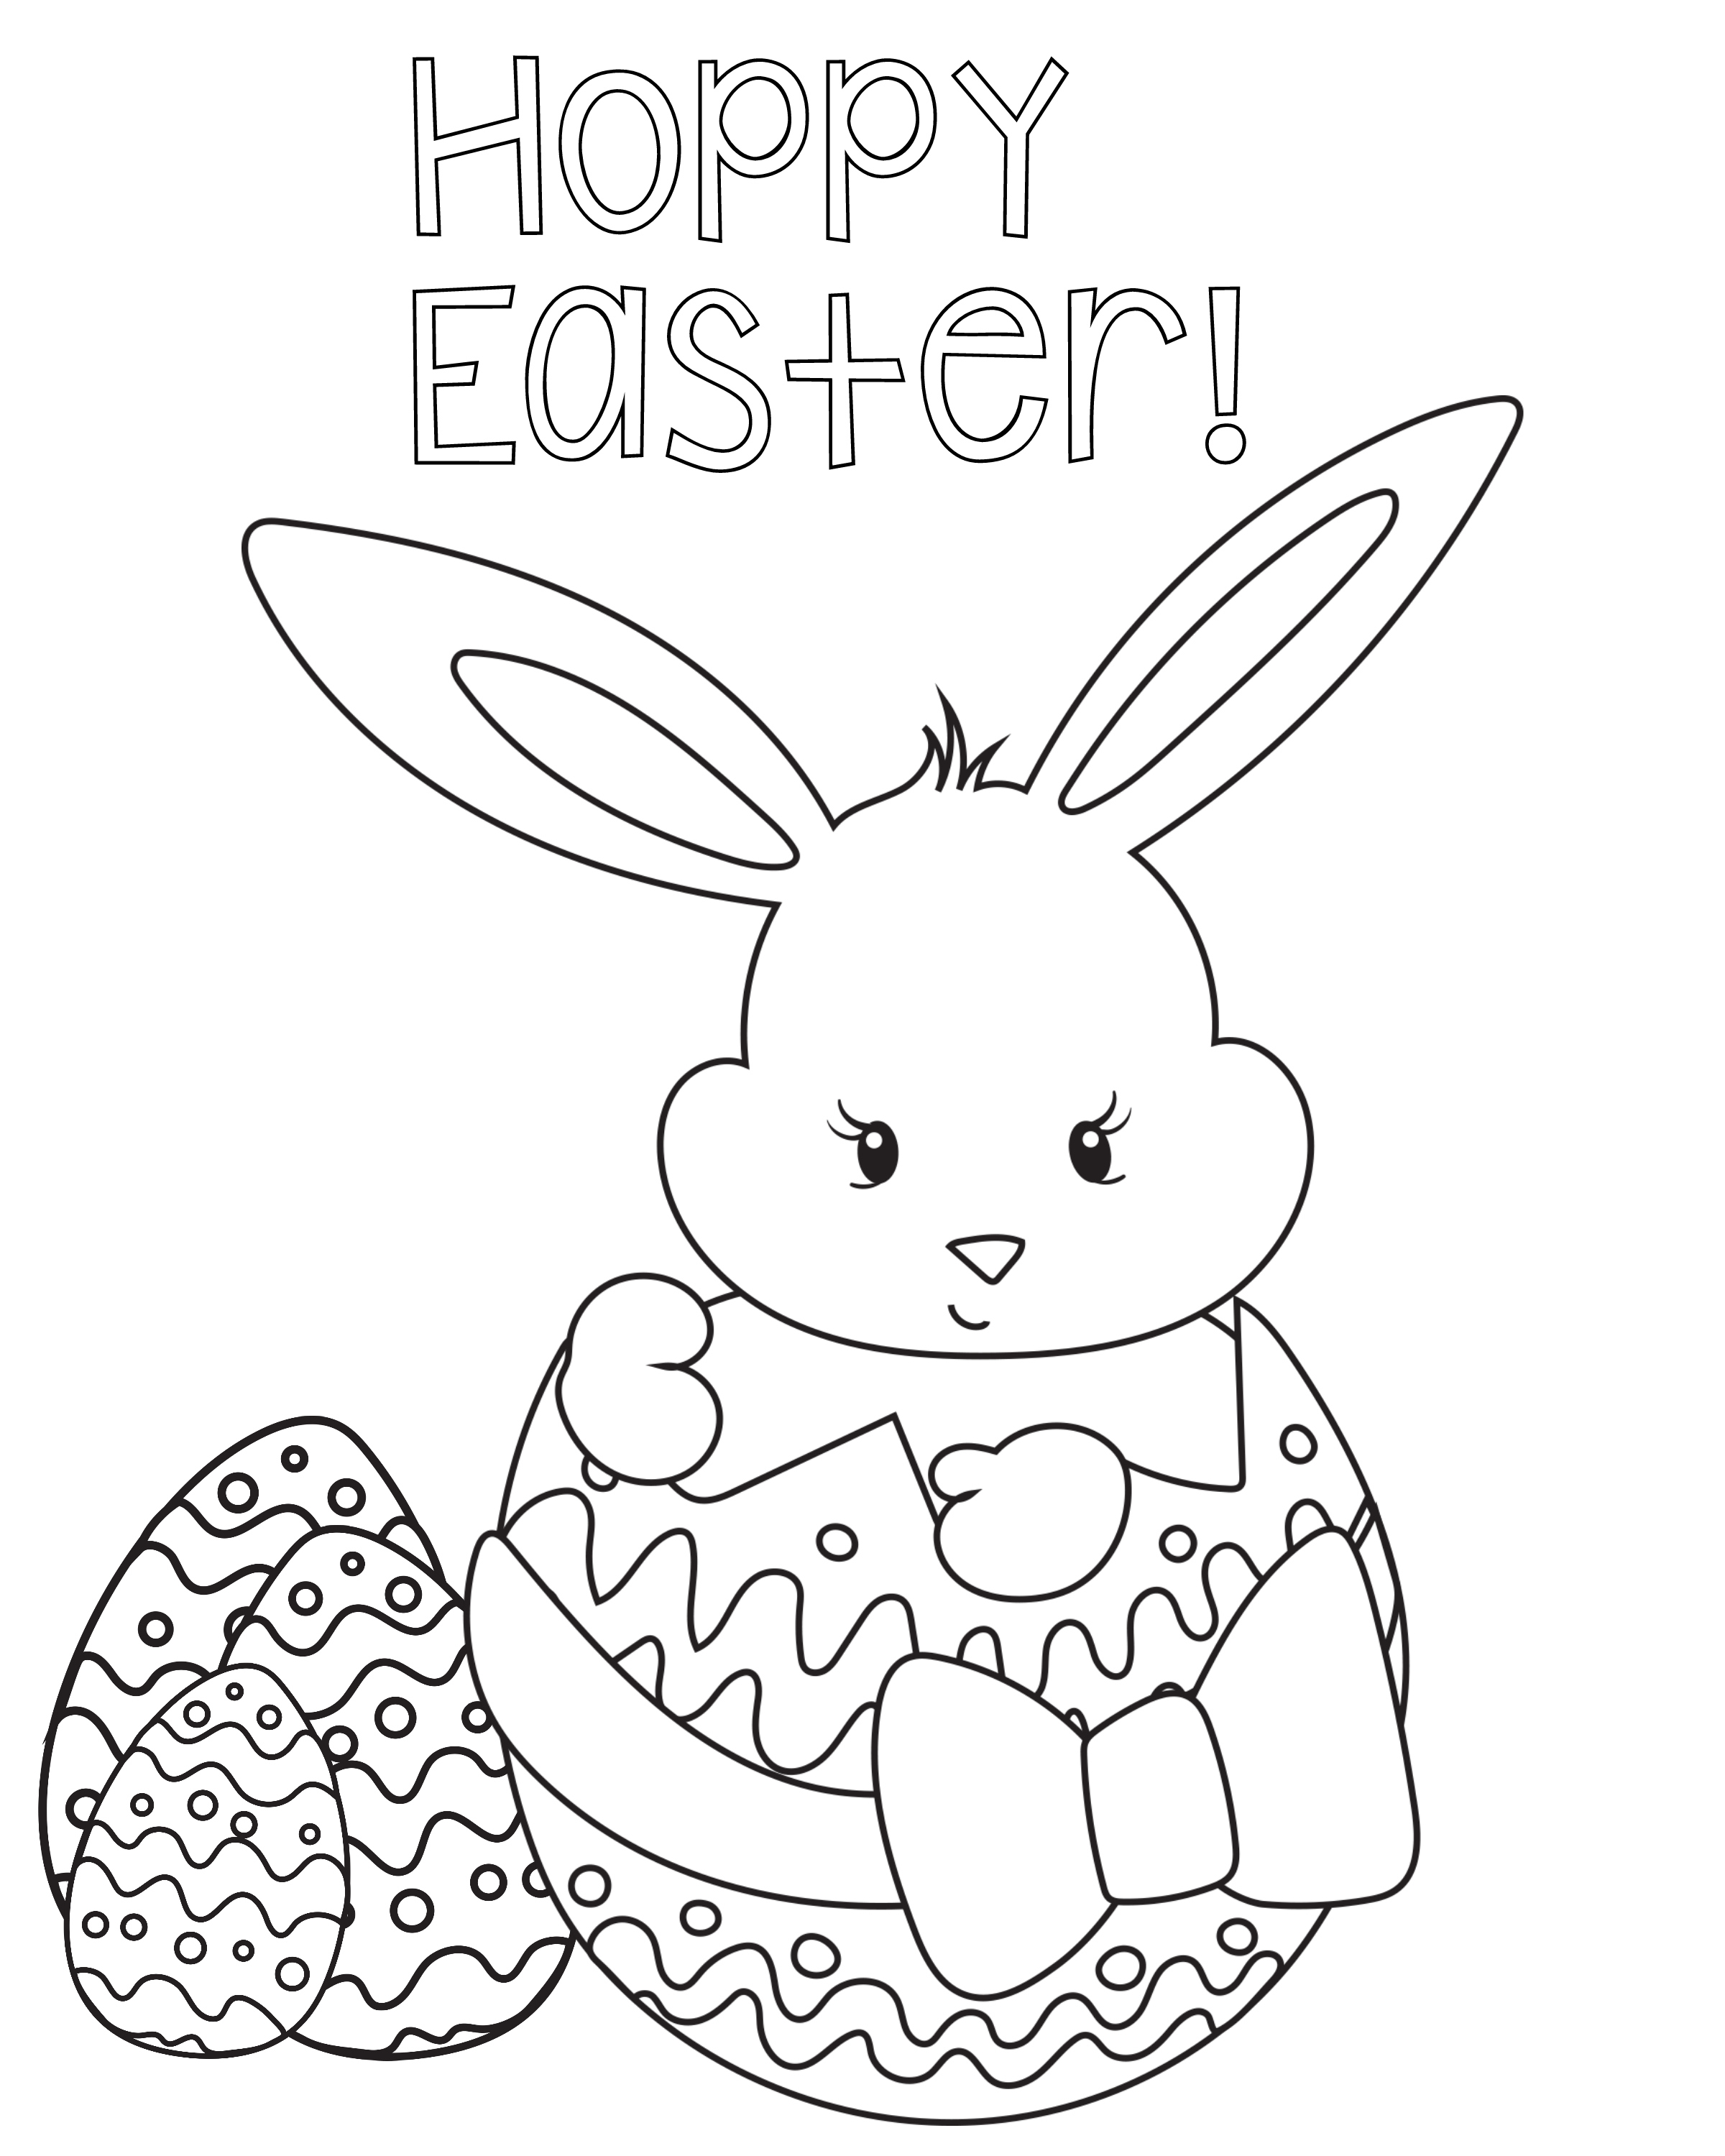 Easter Coloring Pages For Kids - Crazy Little Projects - Easter Color Pages Free Printable